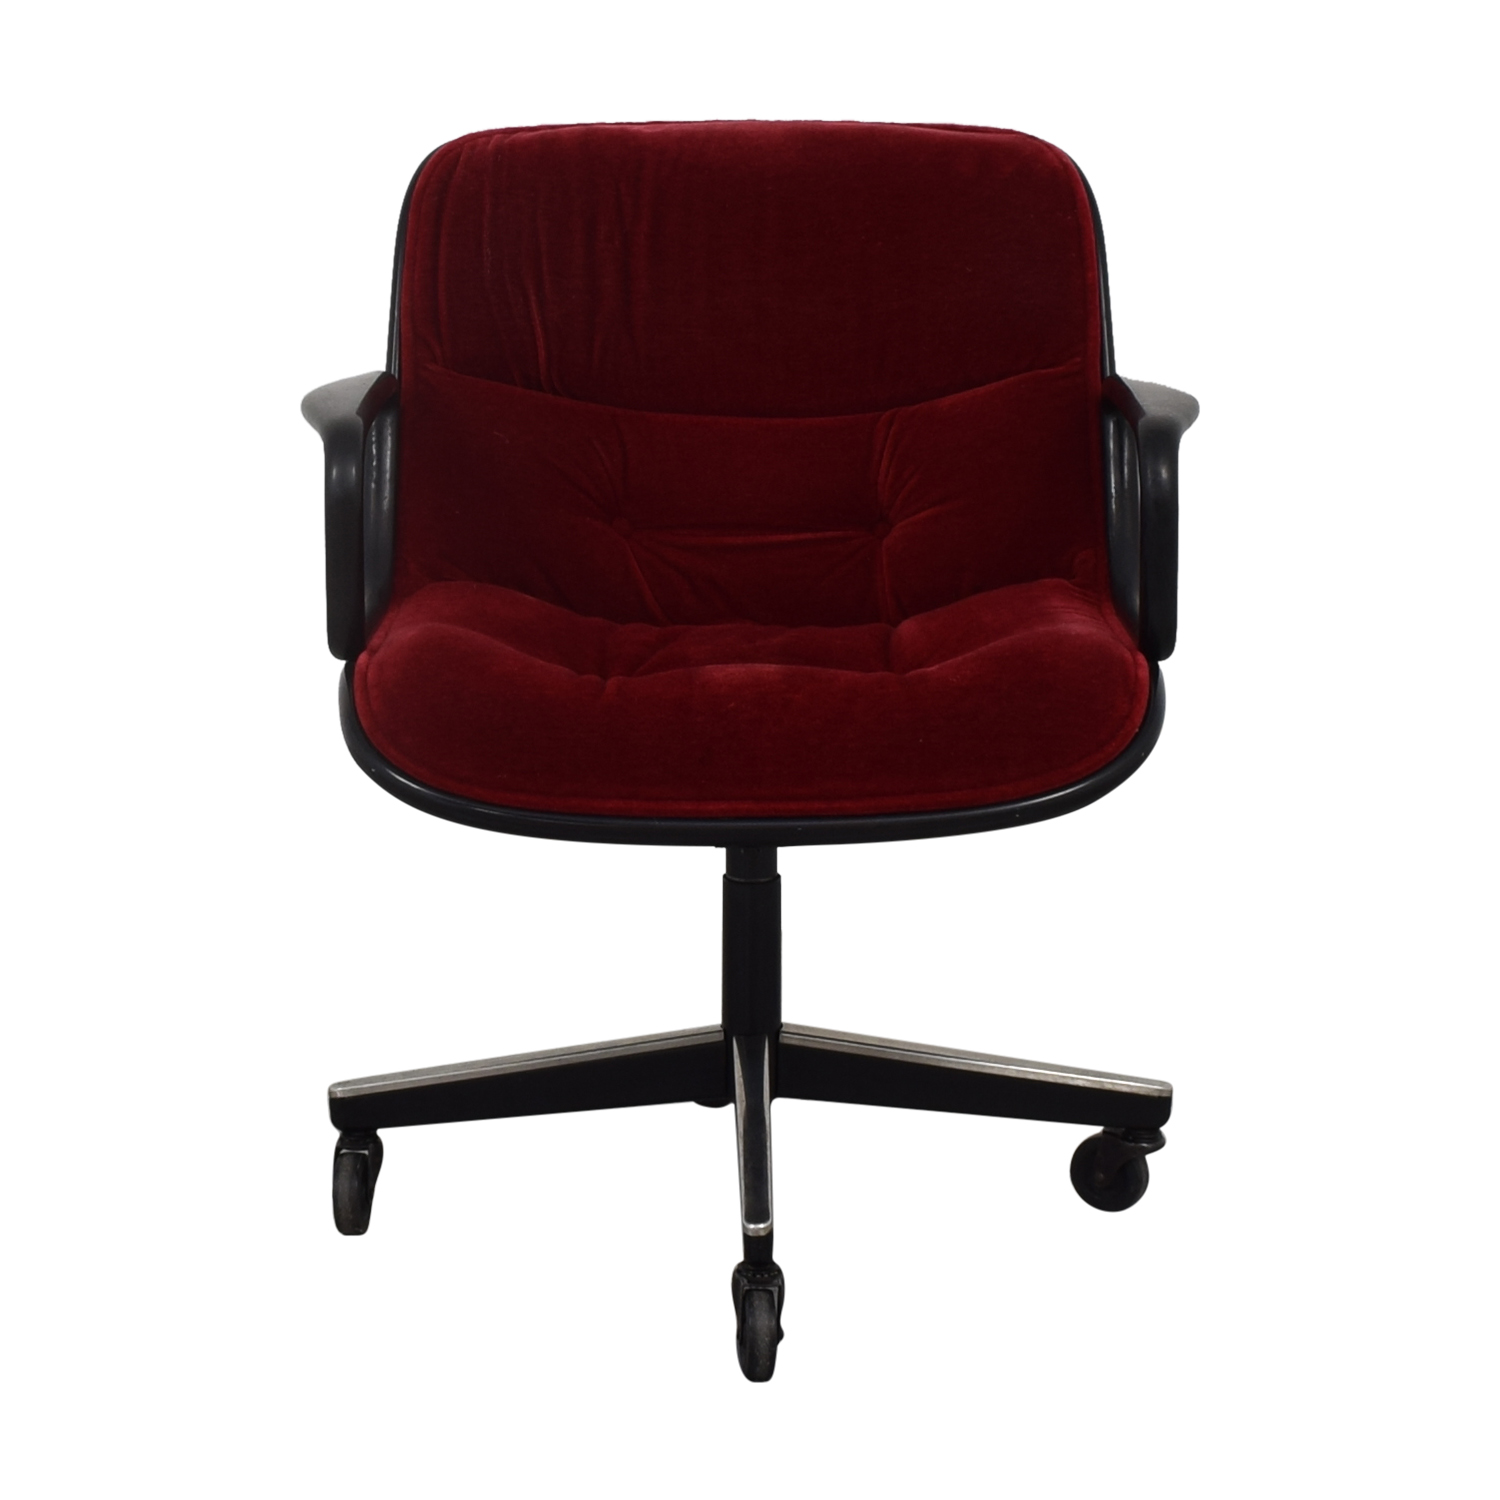 Knoll Knoll Pollock Executive Chair for sale